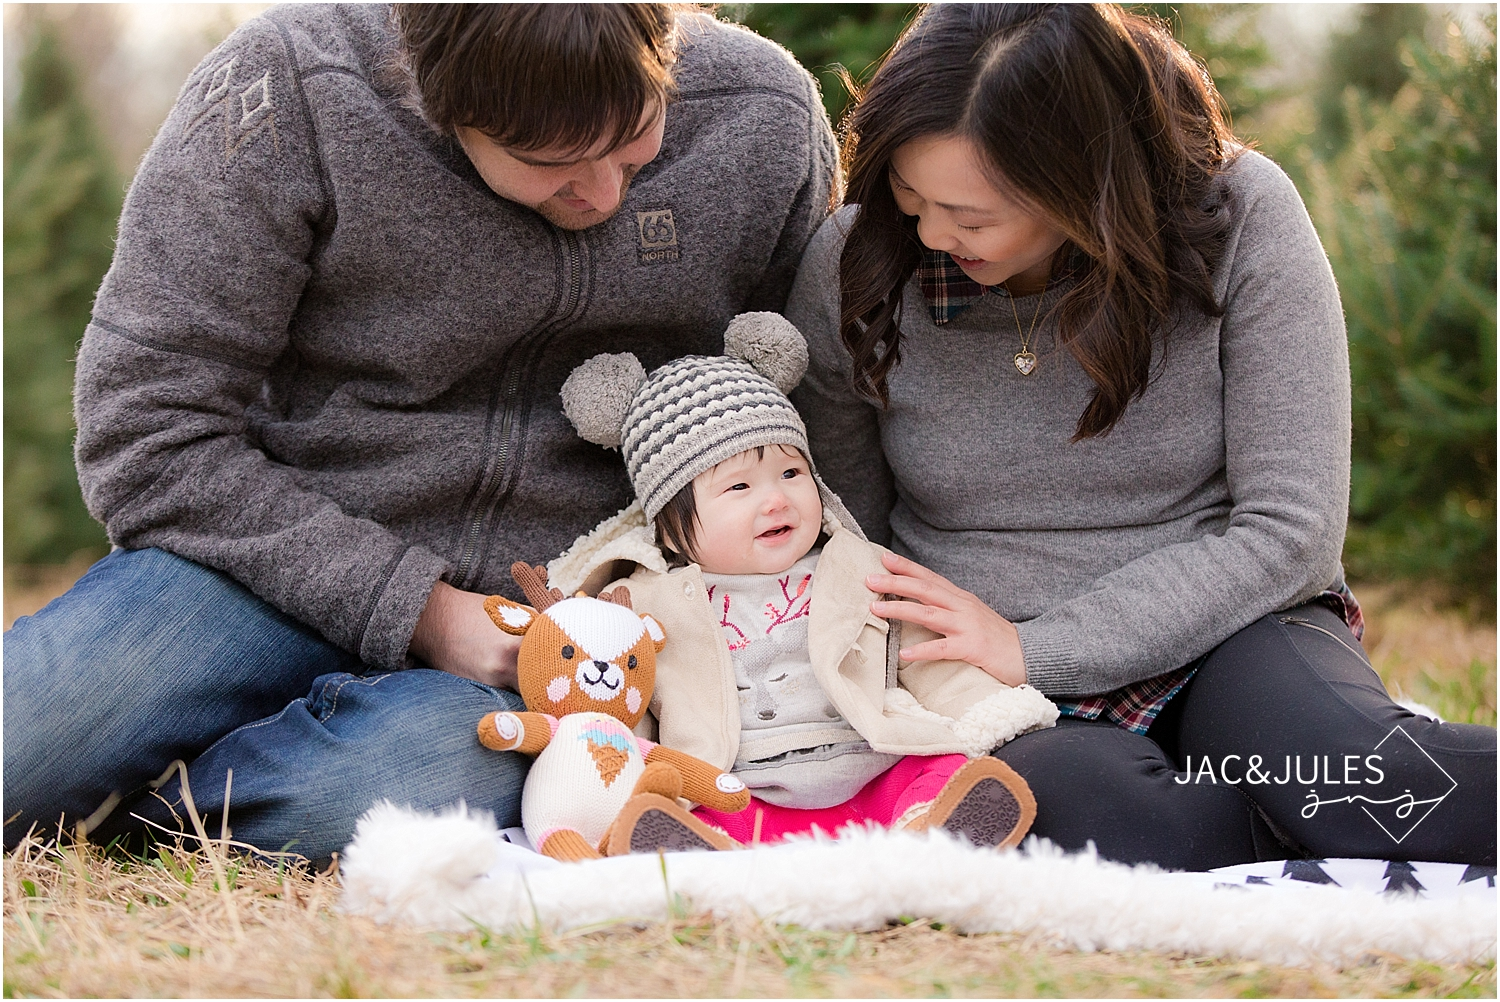 jacnjules photographs 6 month old girl for christmas at lone silo tree farm in NJ